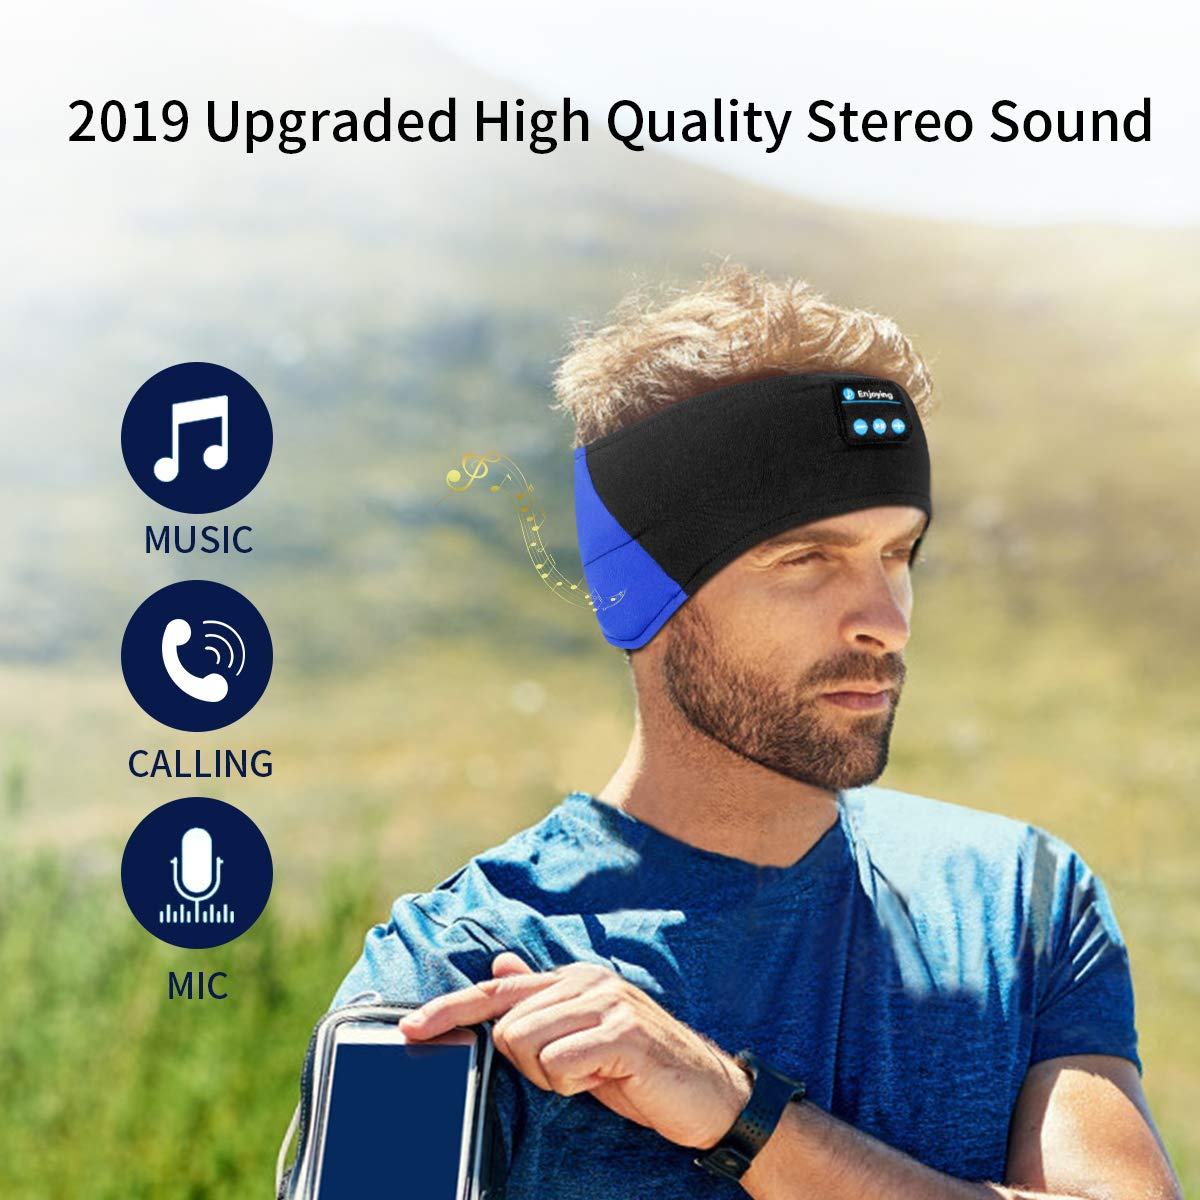 WU-MINGLU Bluetooth Headband Sleep Headphones, Wireless Music Sport Headbands Headsets Sleeping Headphone for Men,Women with Thin and Cool Fabric & Adjustable Earphones for Running, Yoga (BLUE)